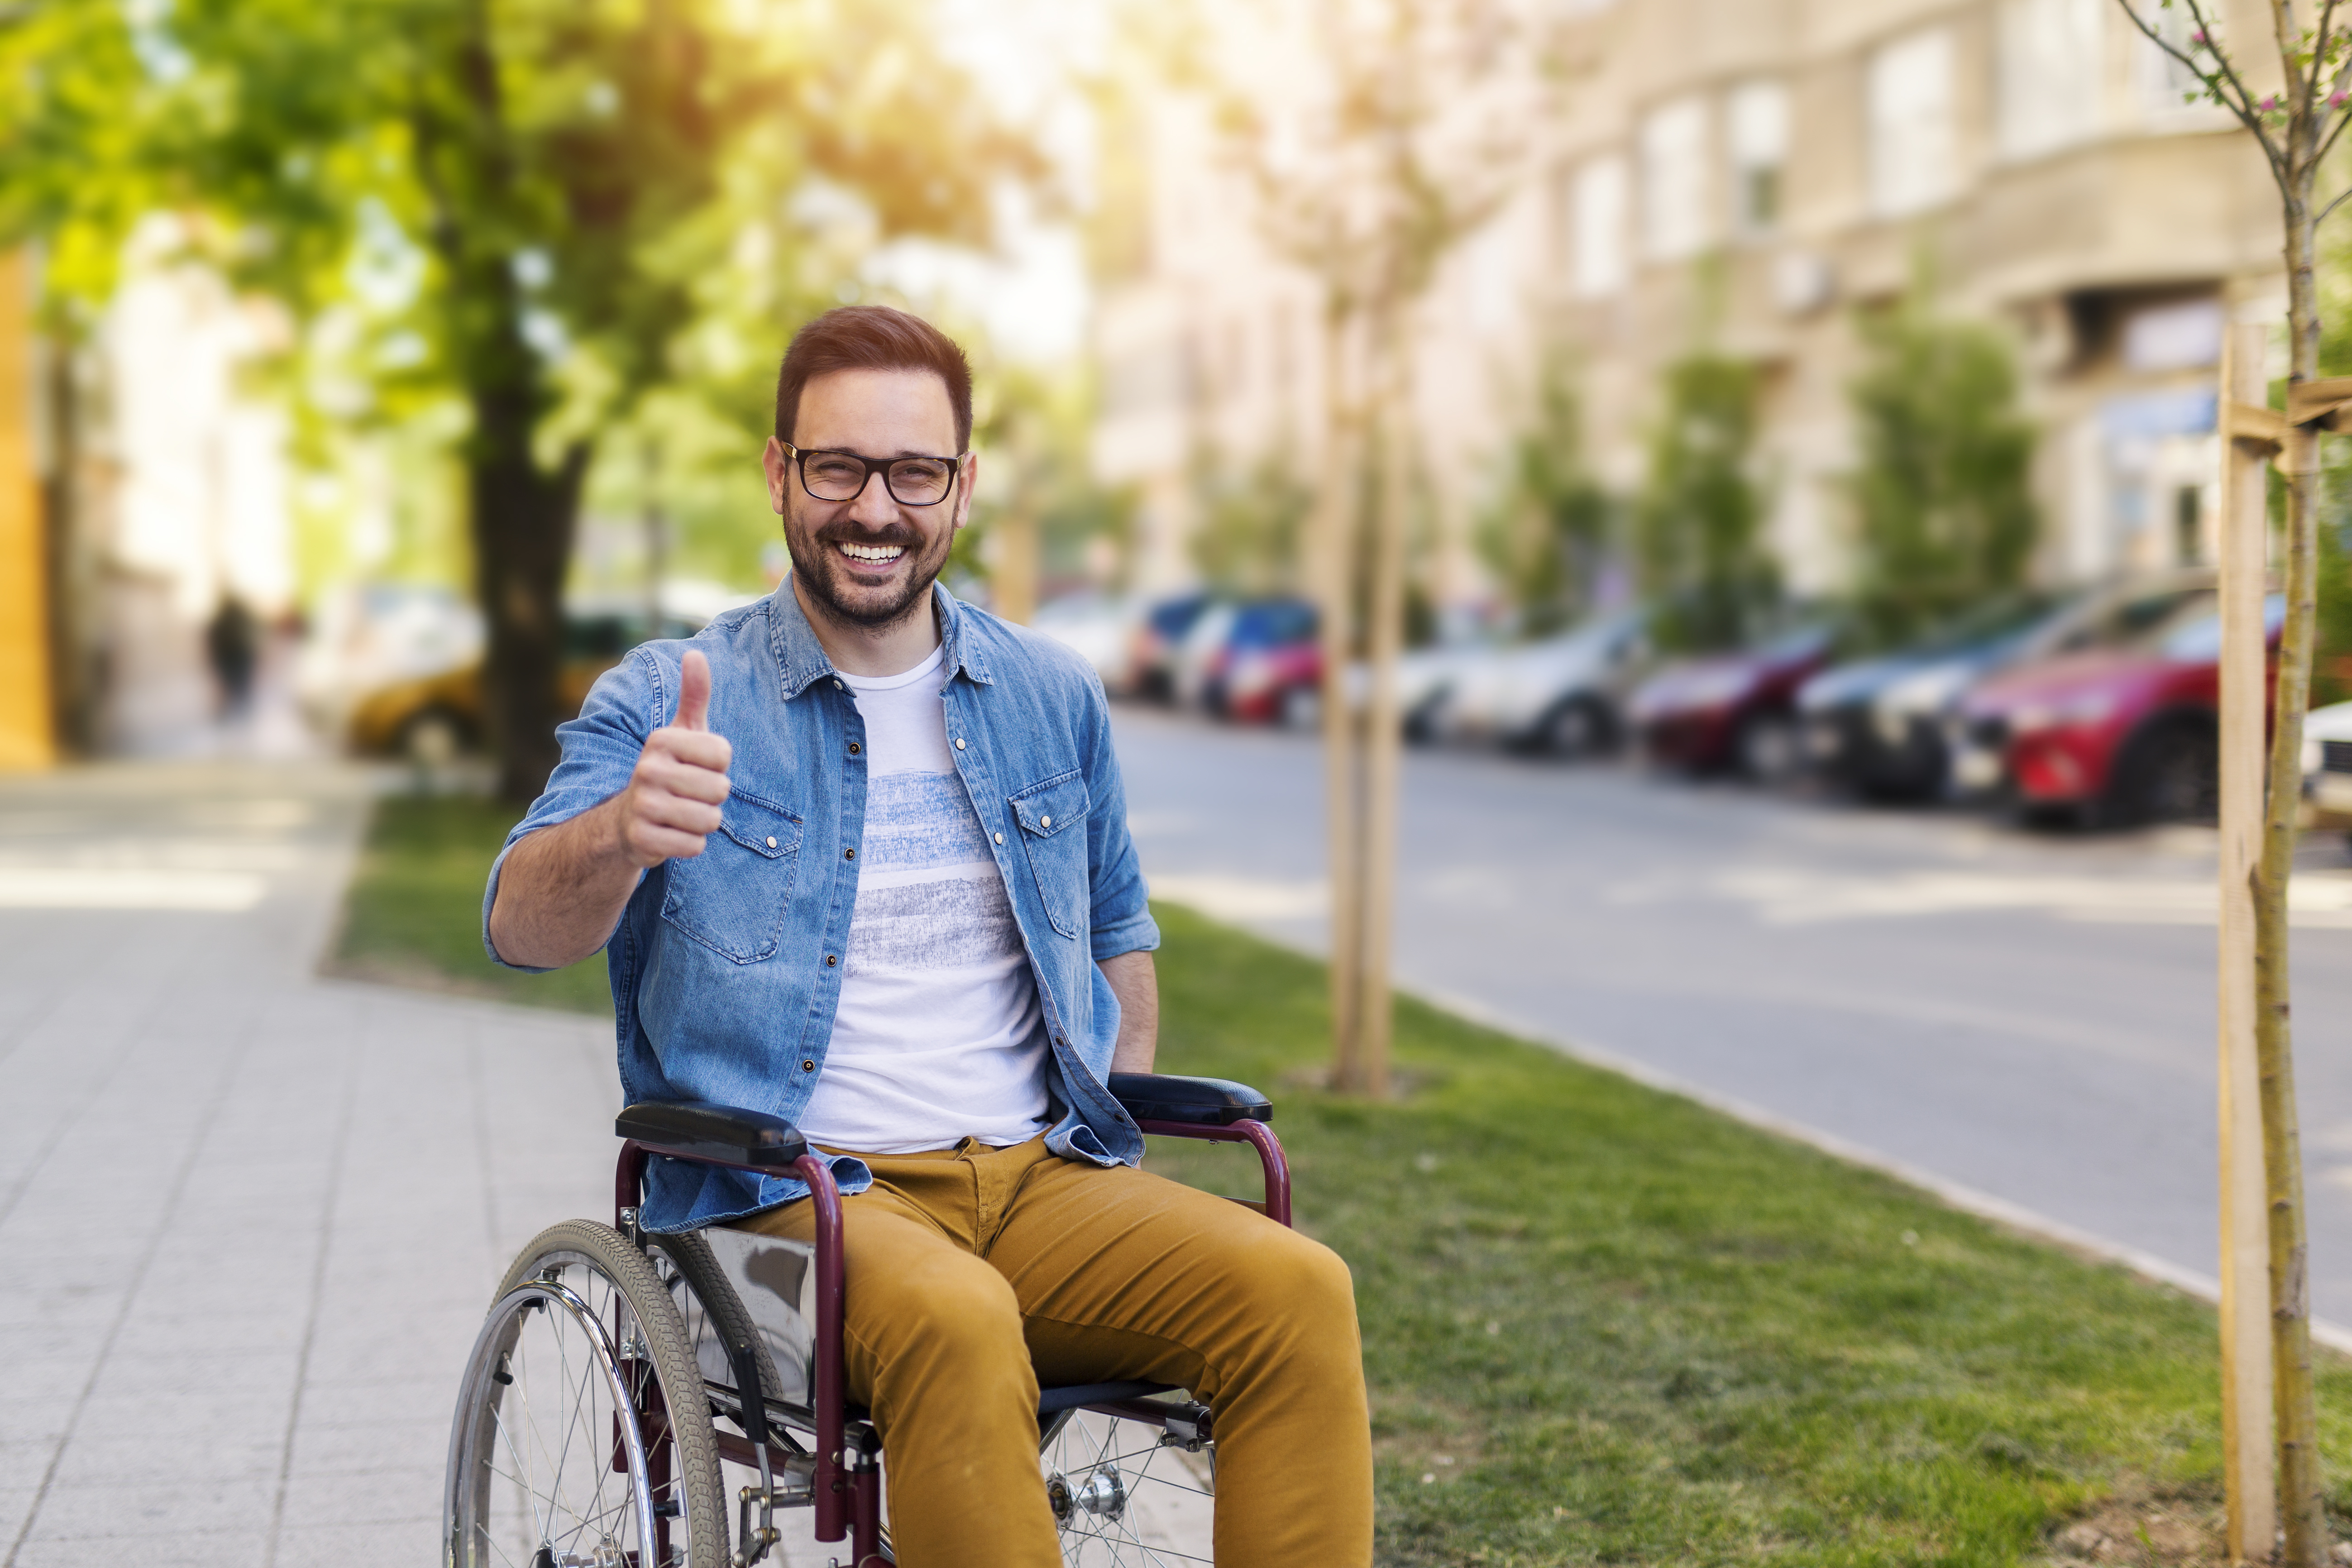 Stock image of a male wheelchair user smiling with a thumbs up